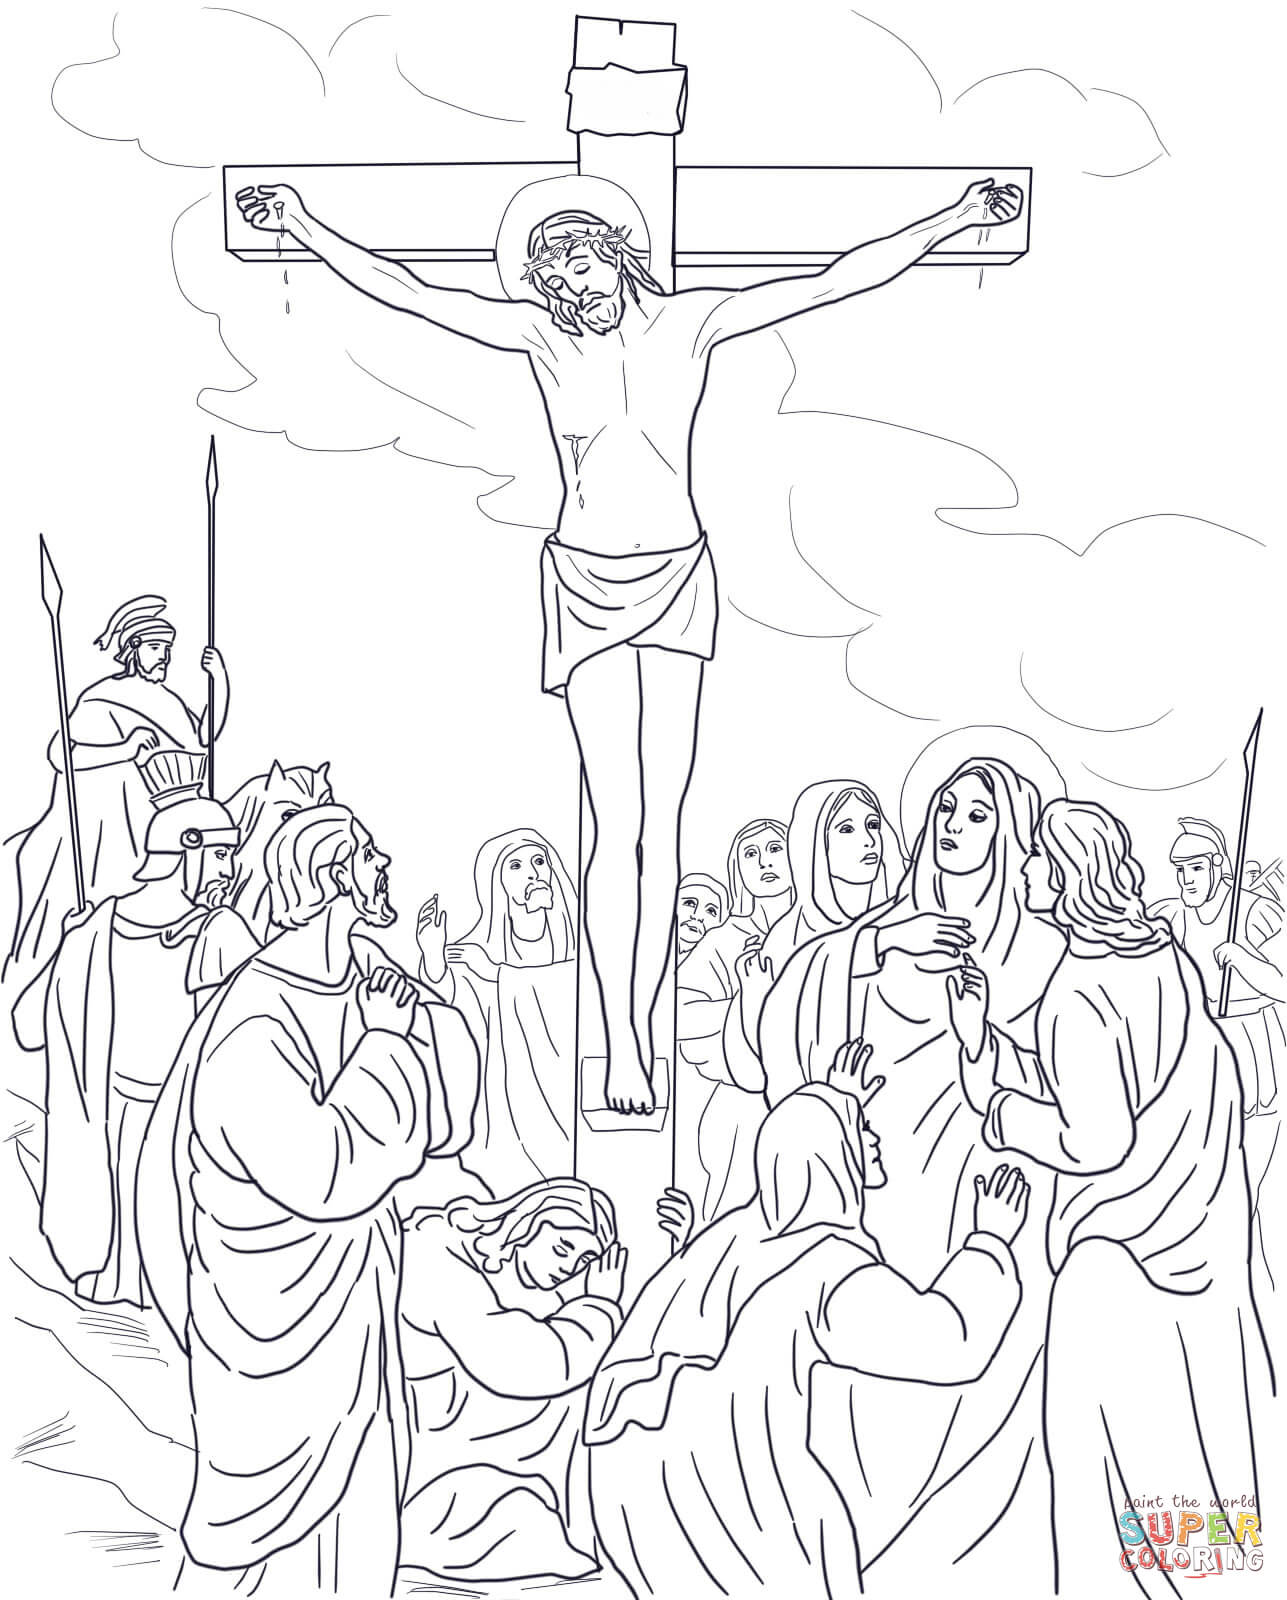 Jesus Coloring Page Pictures Good Pages 1287x1600 Twelfth Station 346x247 Was Krishna Crucified